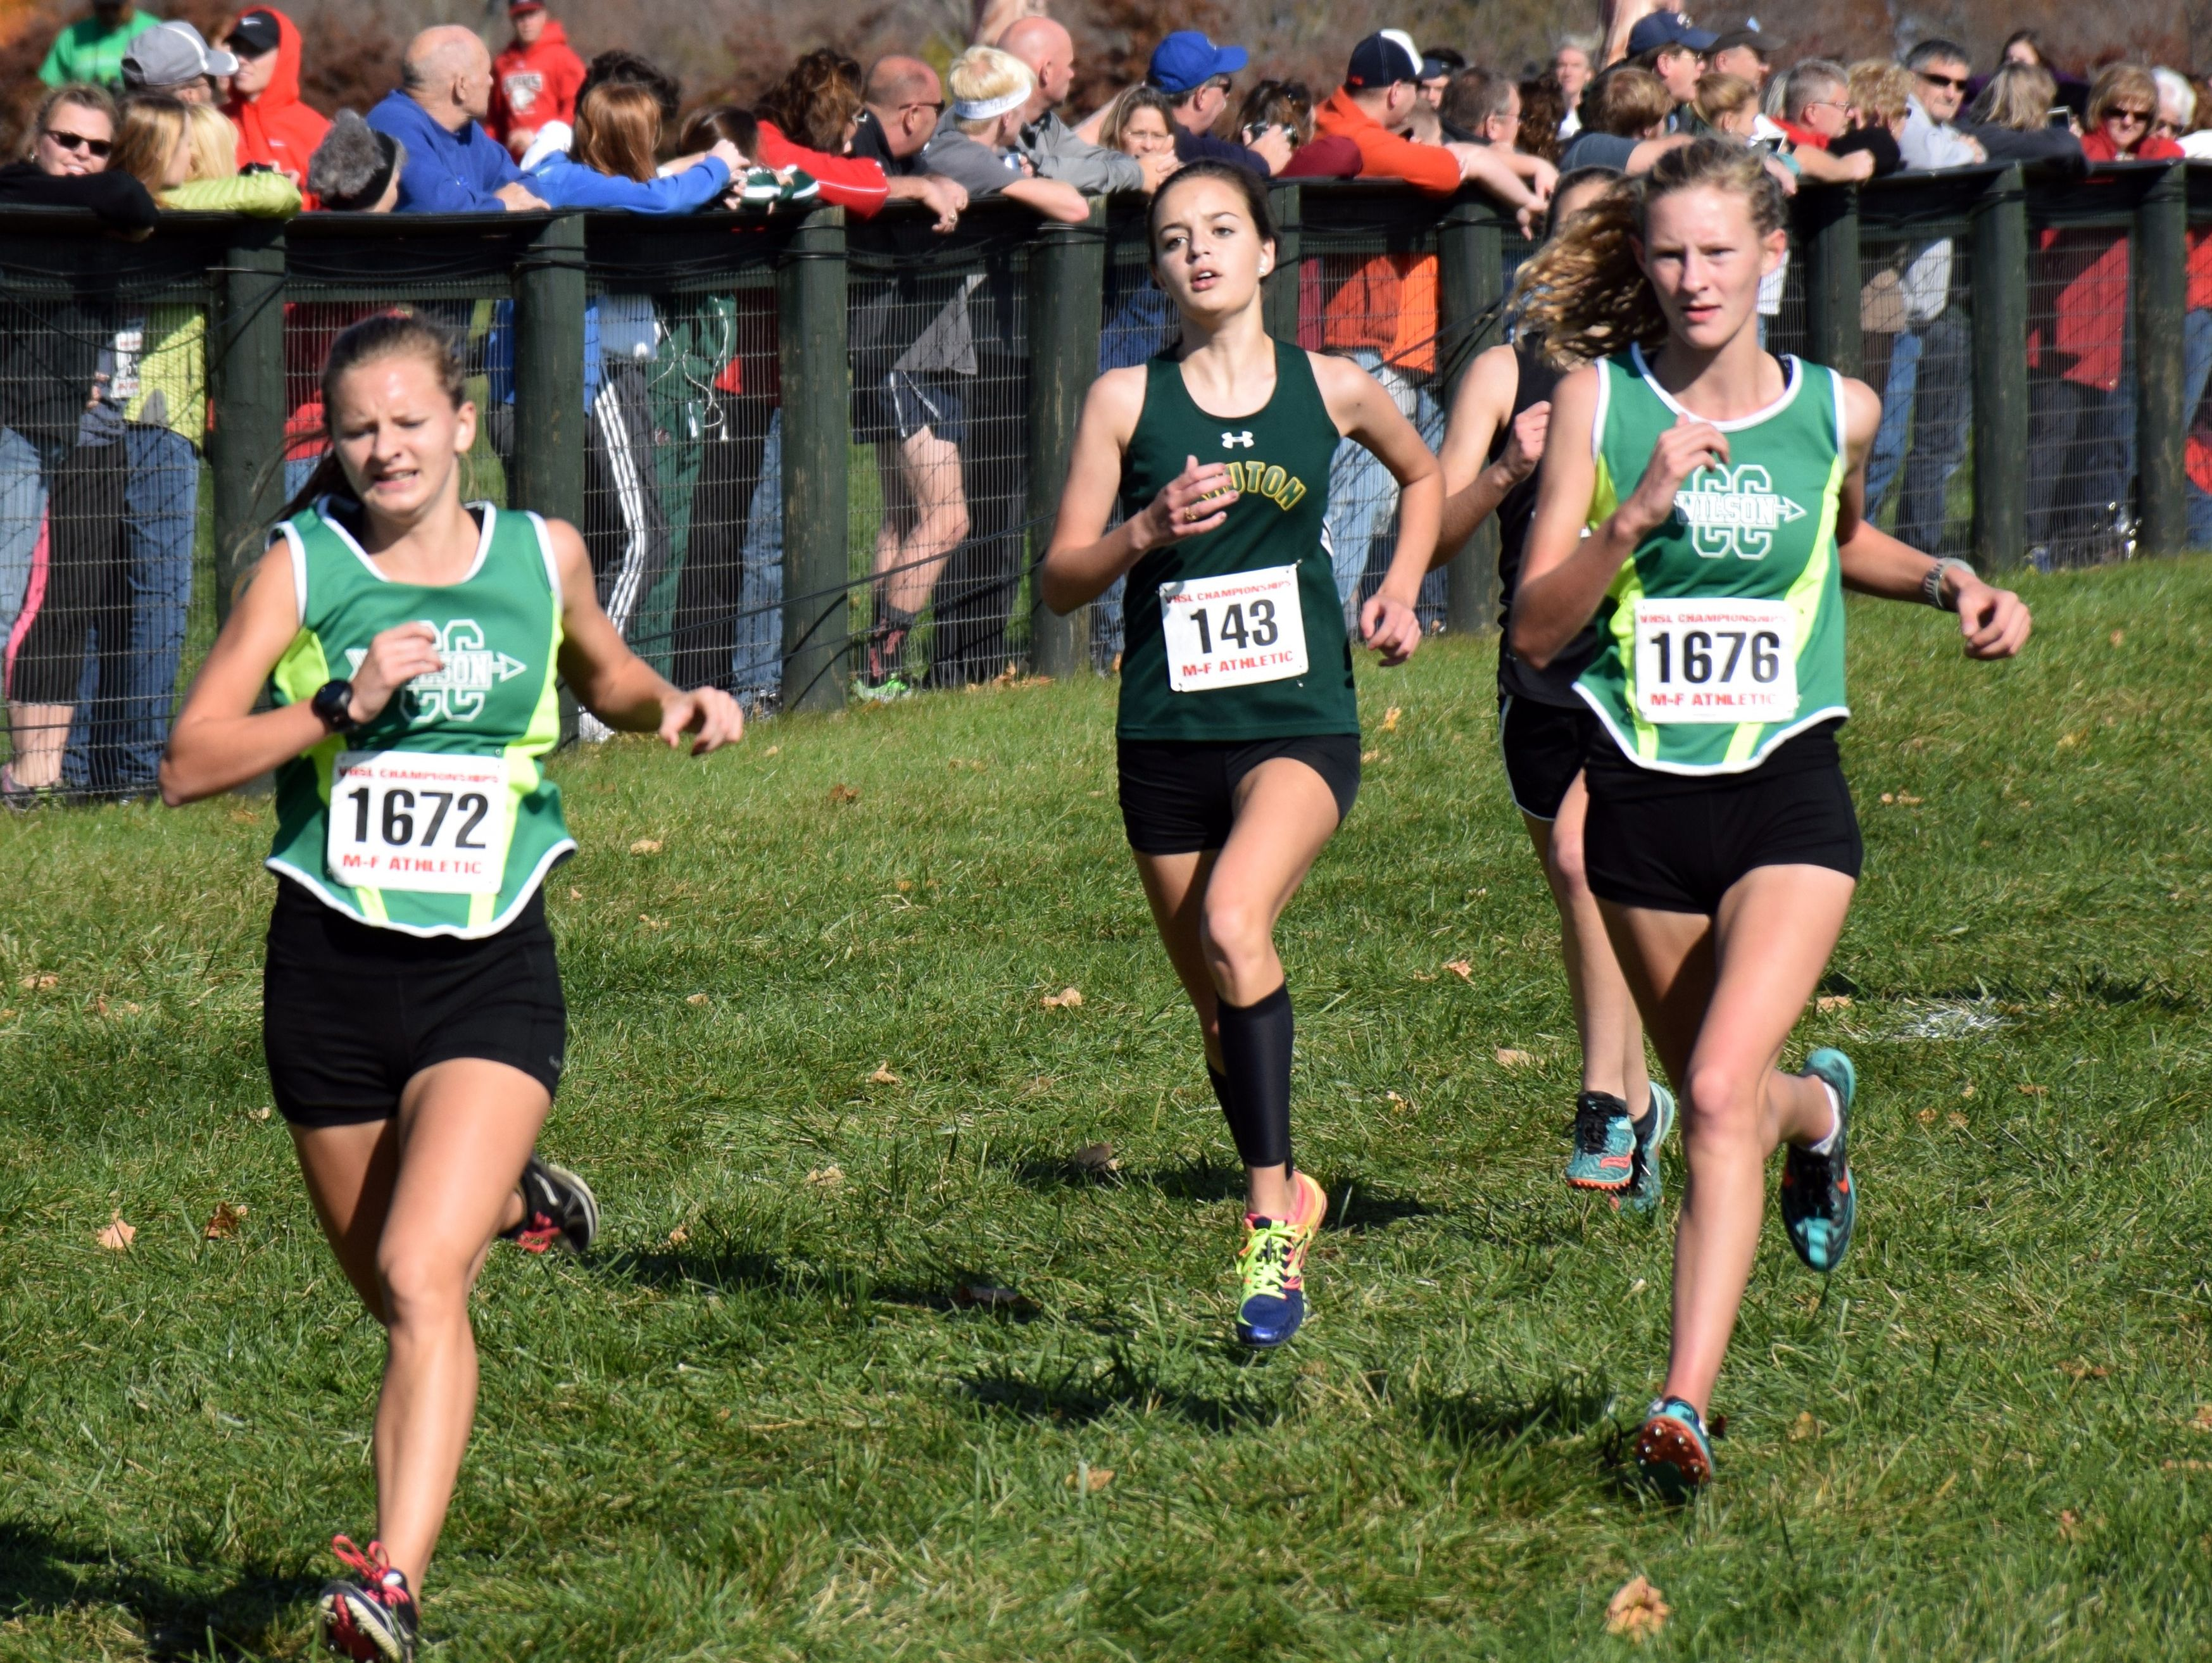 Wilson Memorial's Natalie Prye, left, and Spencer Tuttle, right, head down the final stretch of the Group 2A girls race at the VHSL cross country championships at Great Meadow in The Plains on Friday, Nov. 11, 2016.